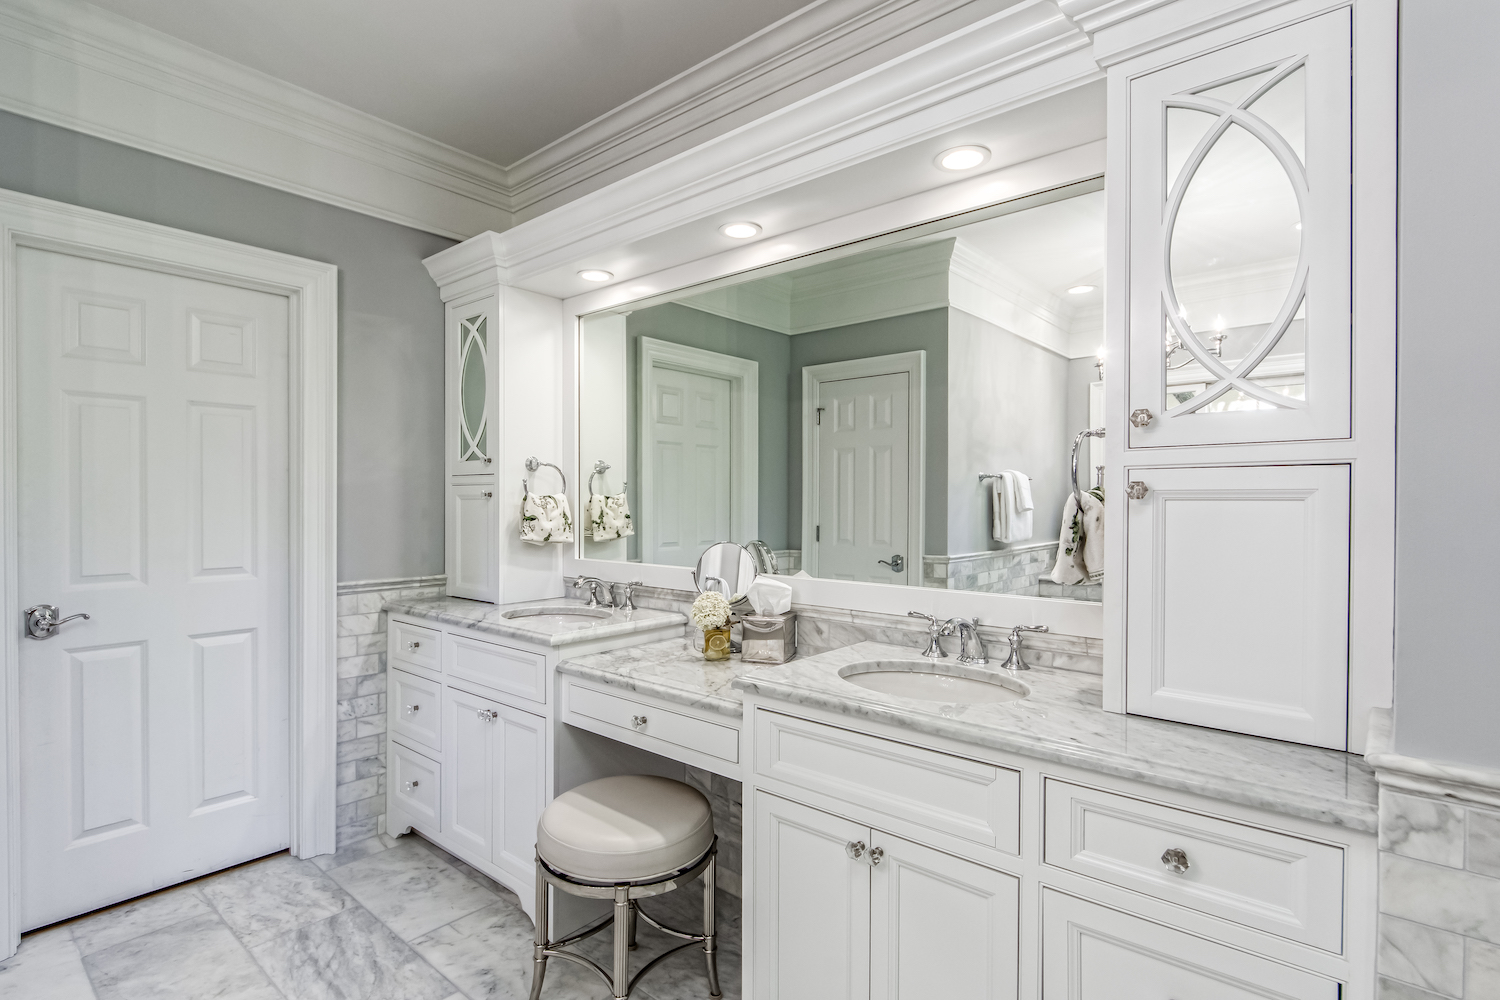 Luxury Bathroom Remodeling Company in Columbus Ohio